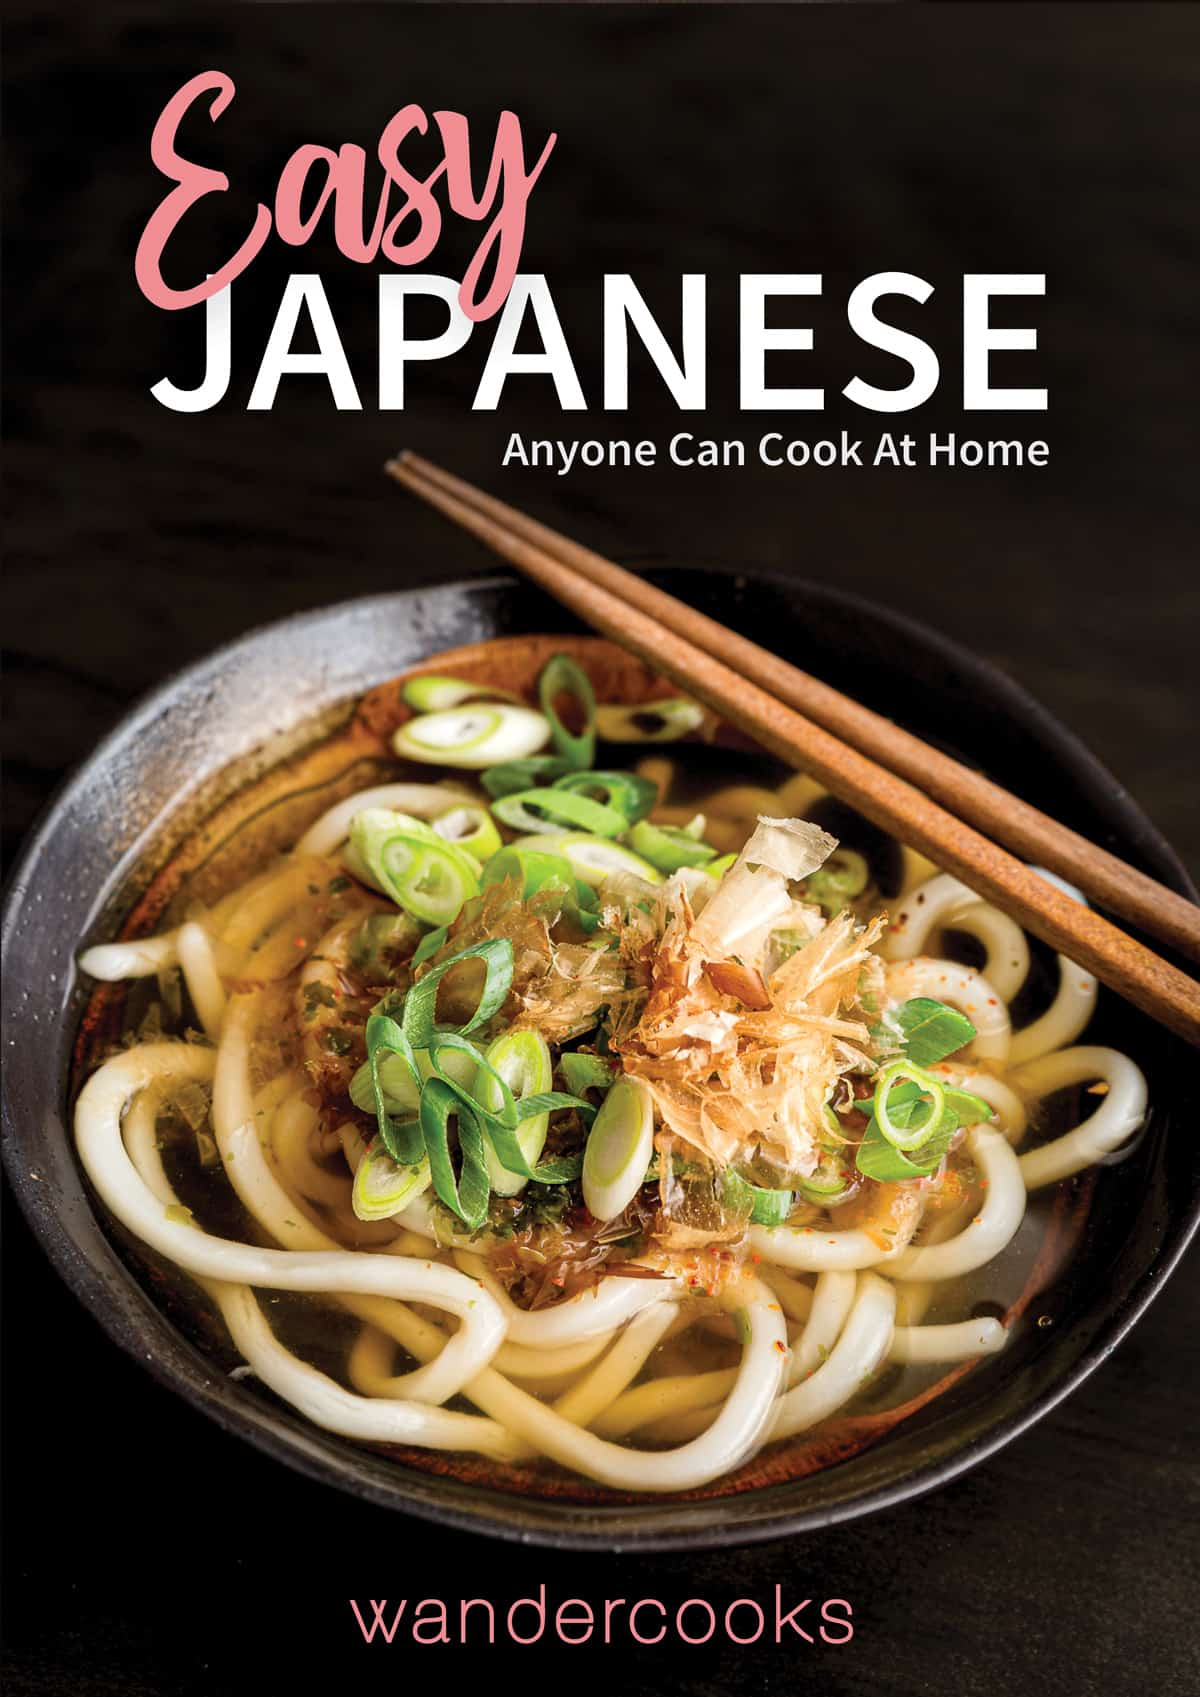 Ebook cover showing a bowl of noodles and text overlay.